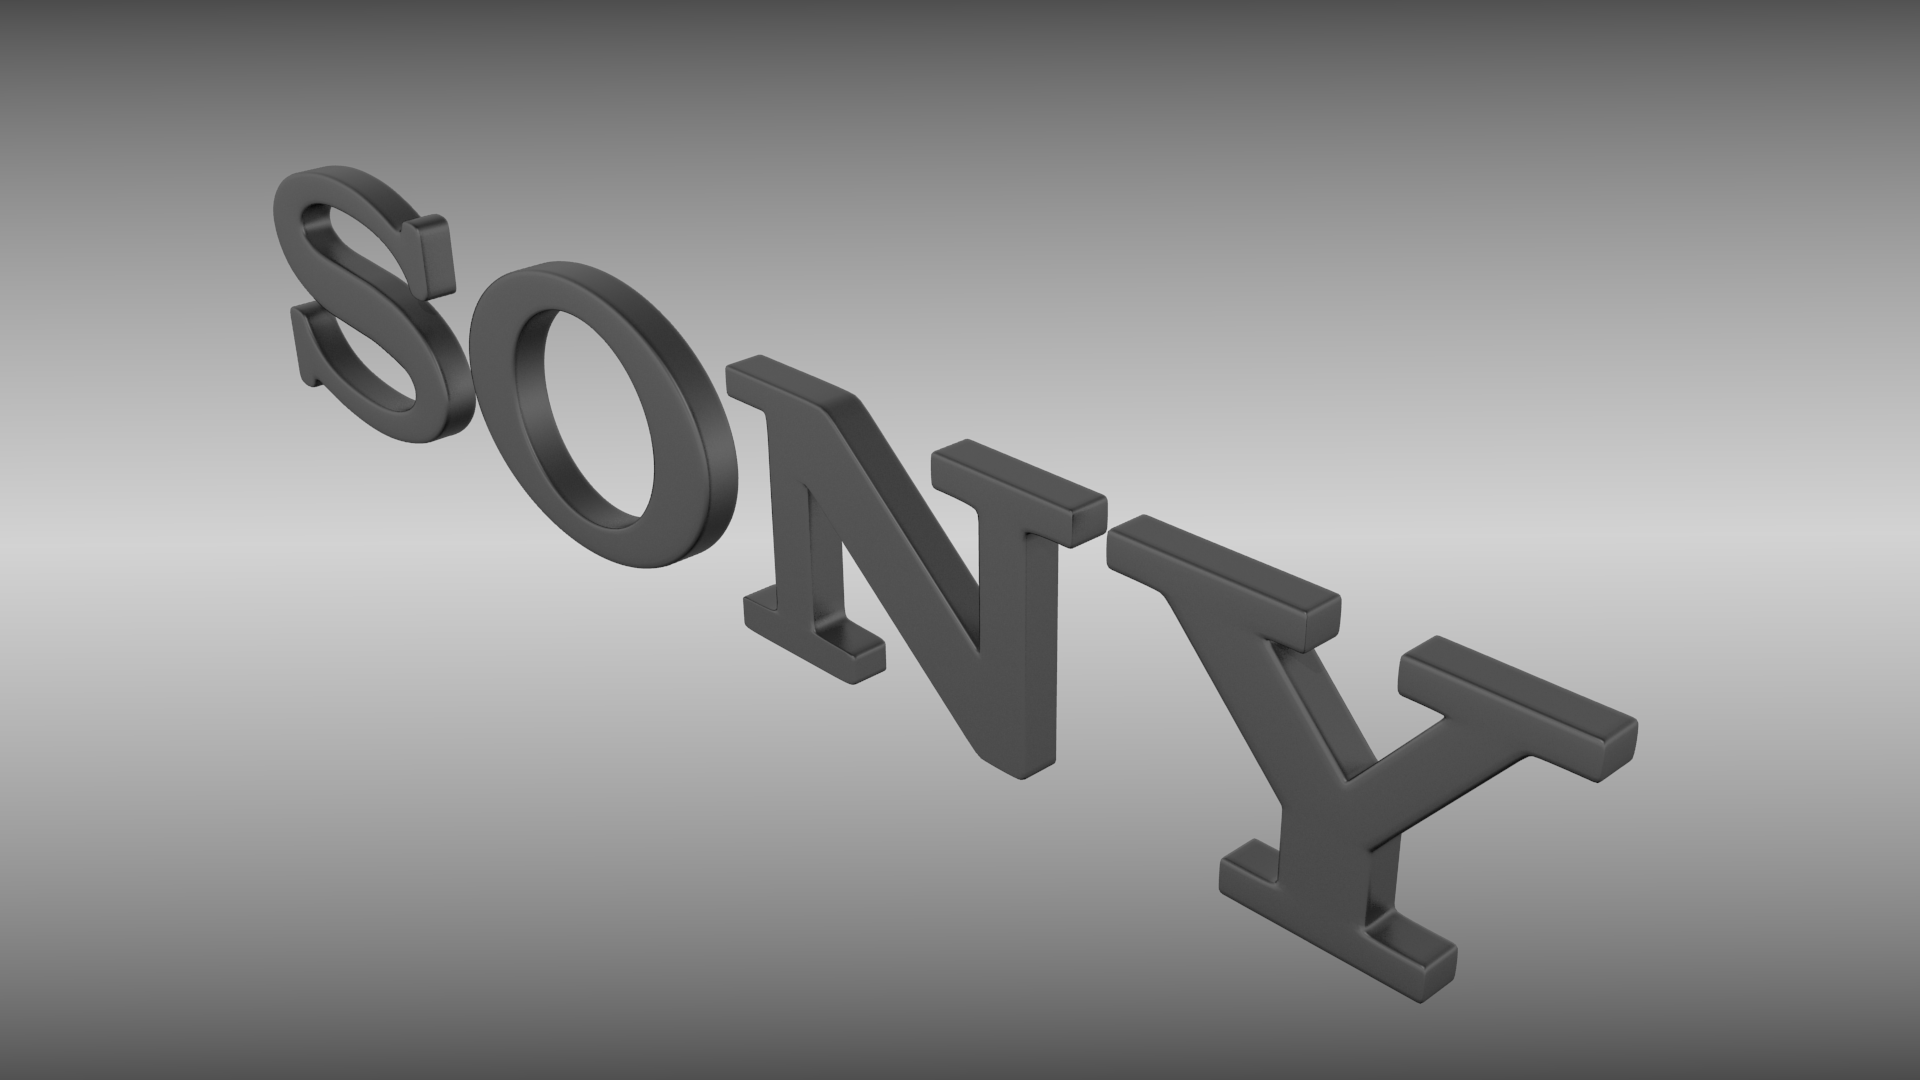 sony logo 3d model | cgtrader